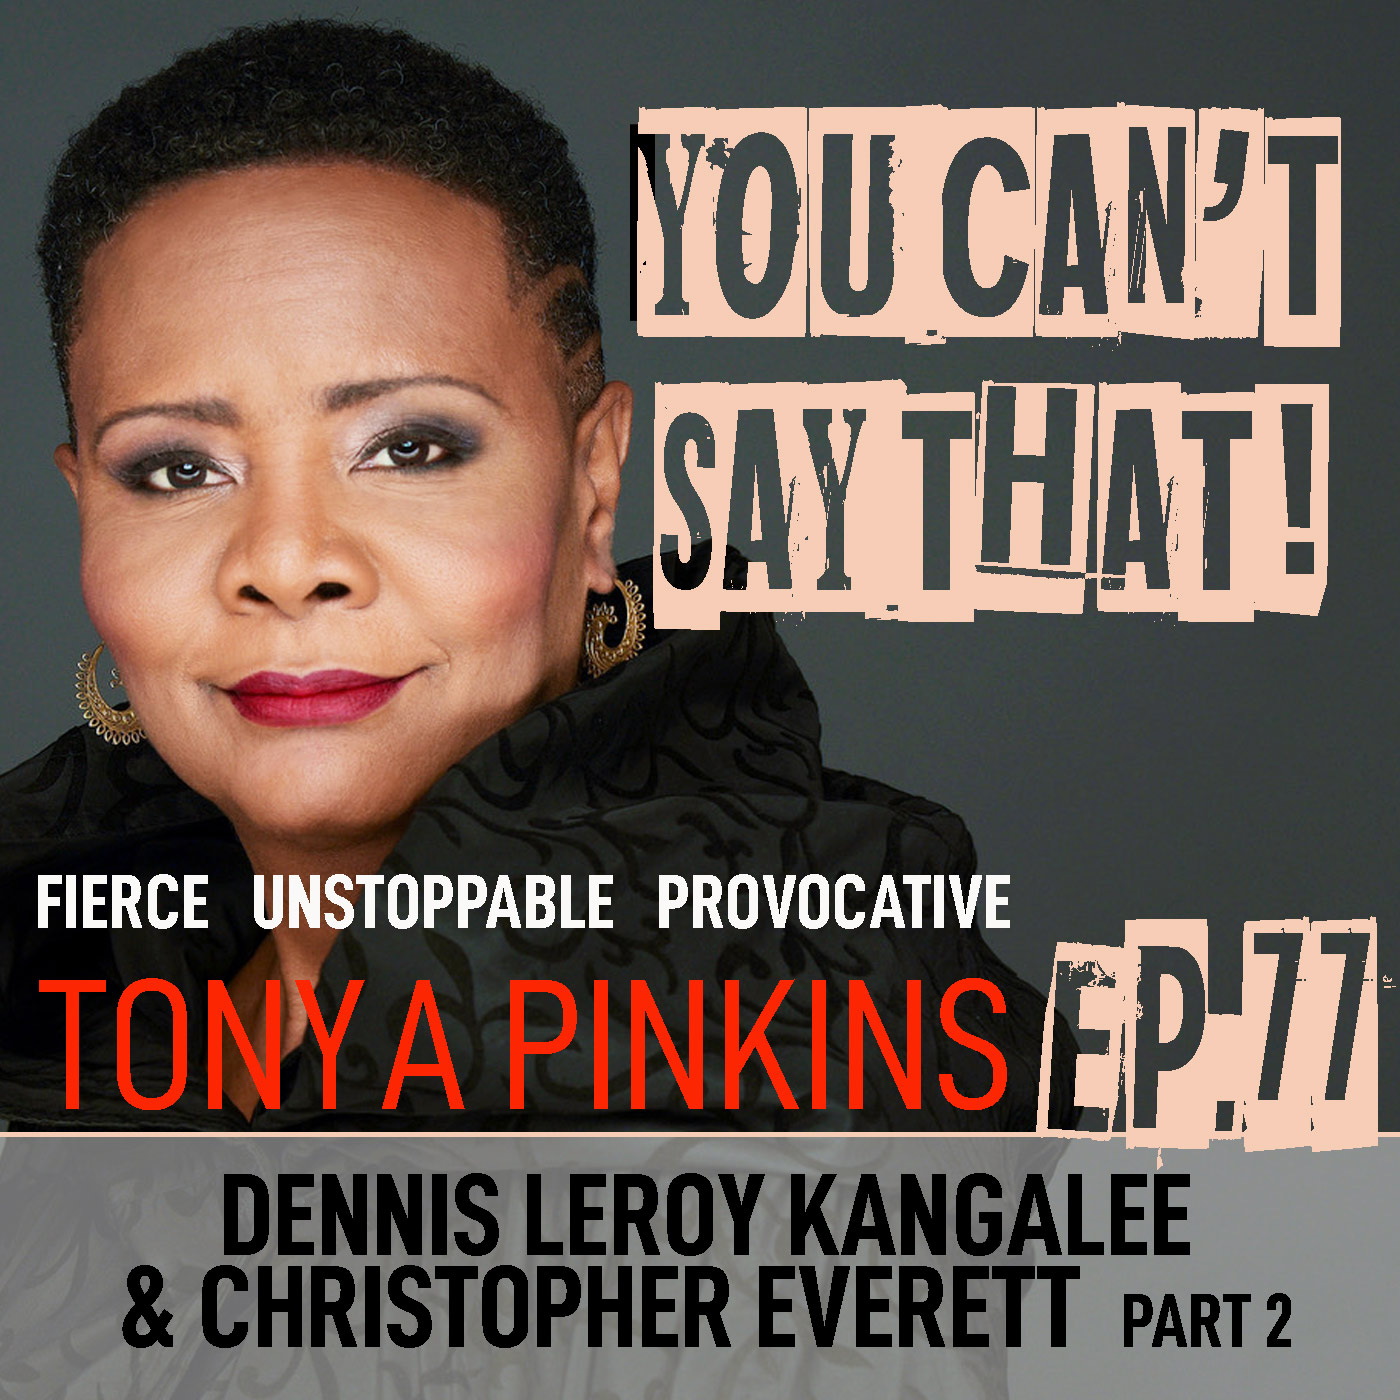 You Can't Say That Tonya Pinkins - Ep77 - Dennis Leroy Kangalee & Christopher Everett (Part 2)